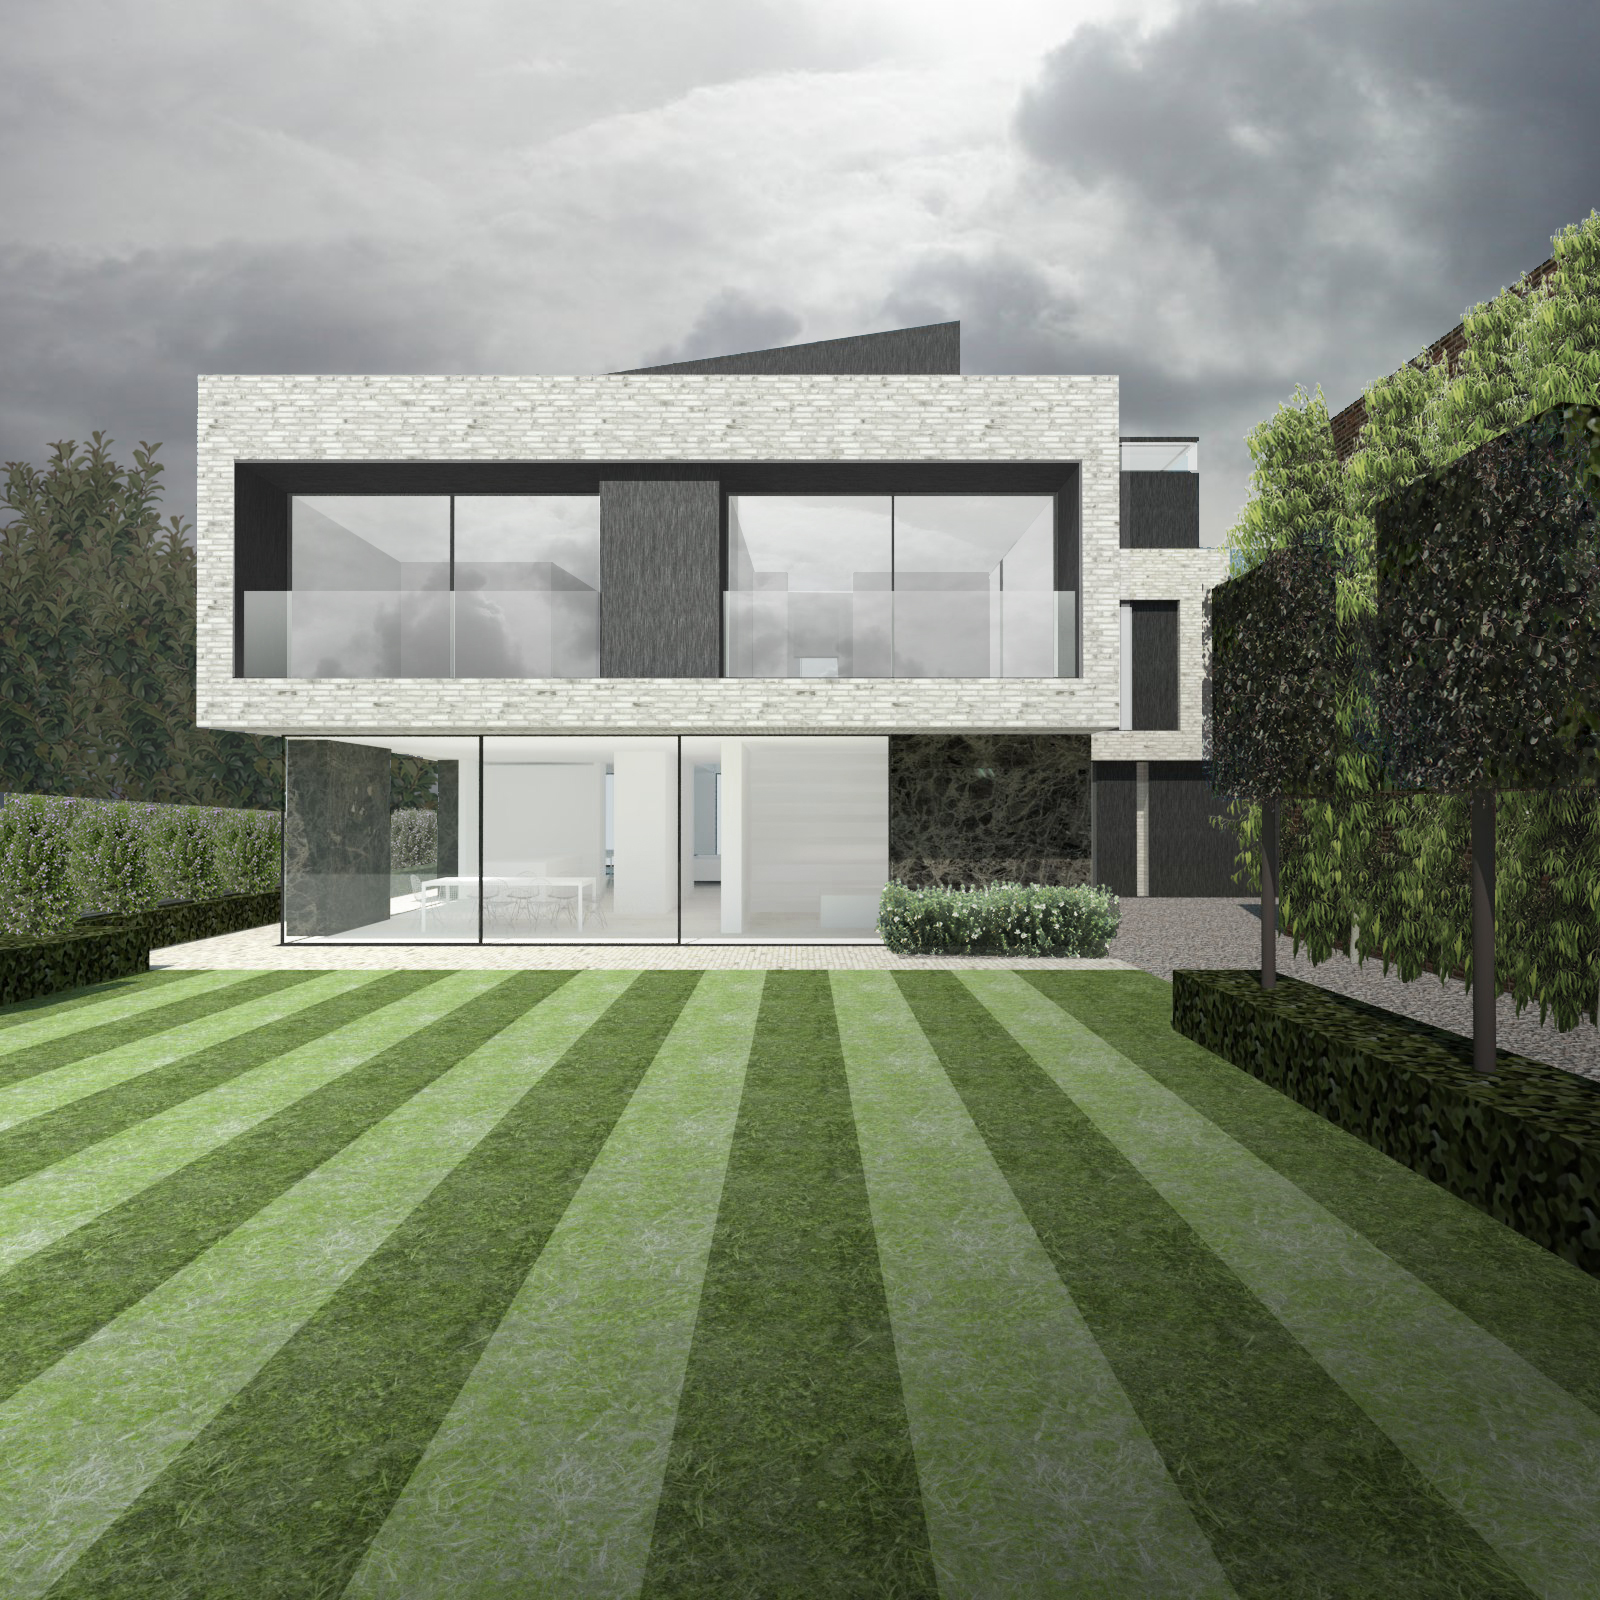 Exceptional Part 2 for contemporary residential studio